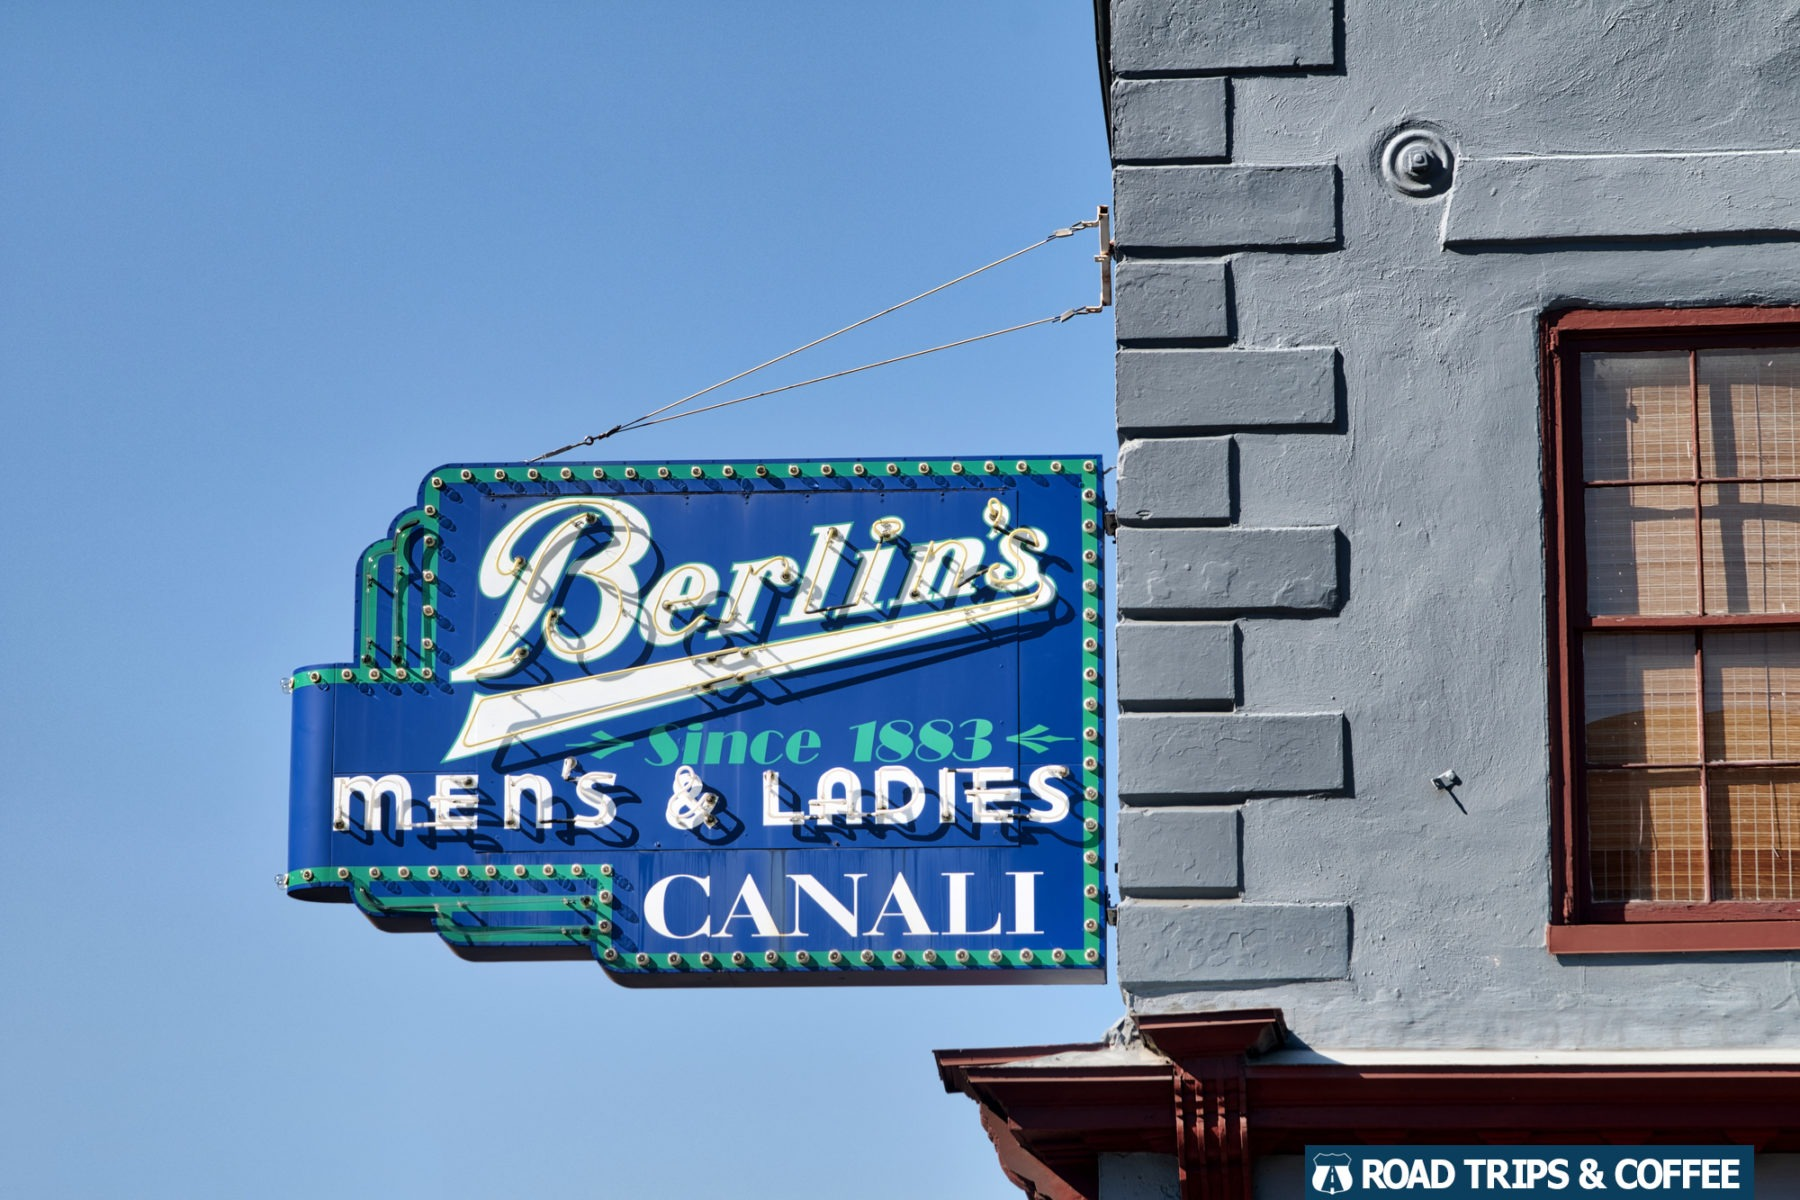 The historic sign of Berlin's hanging on the side of a building in Charleston, South Carolina